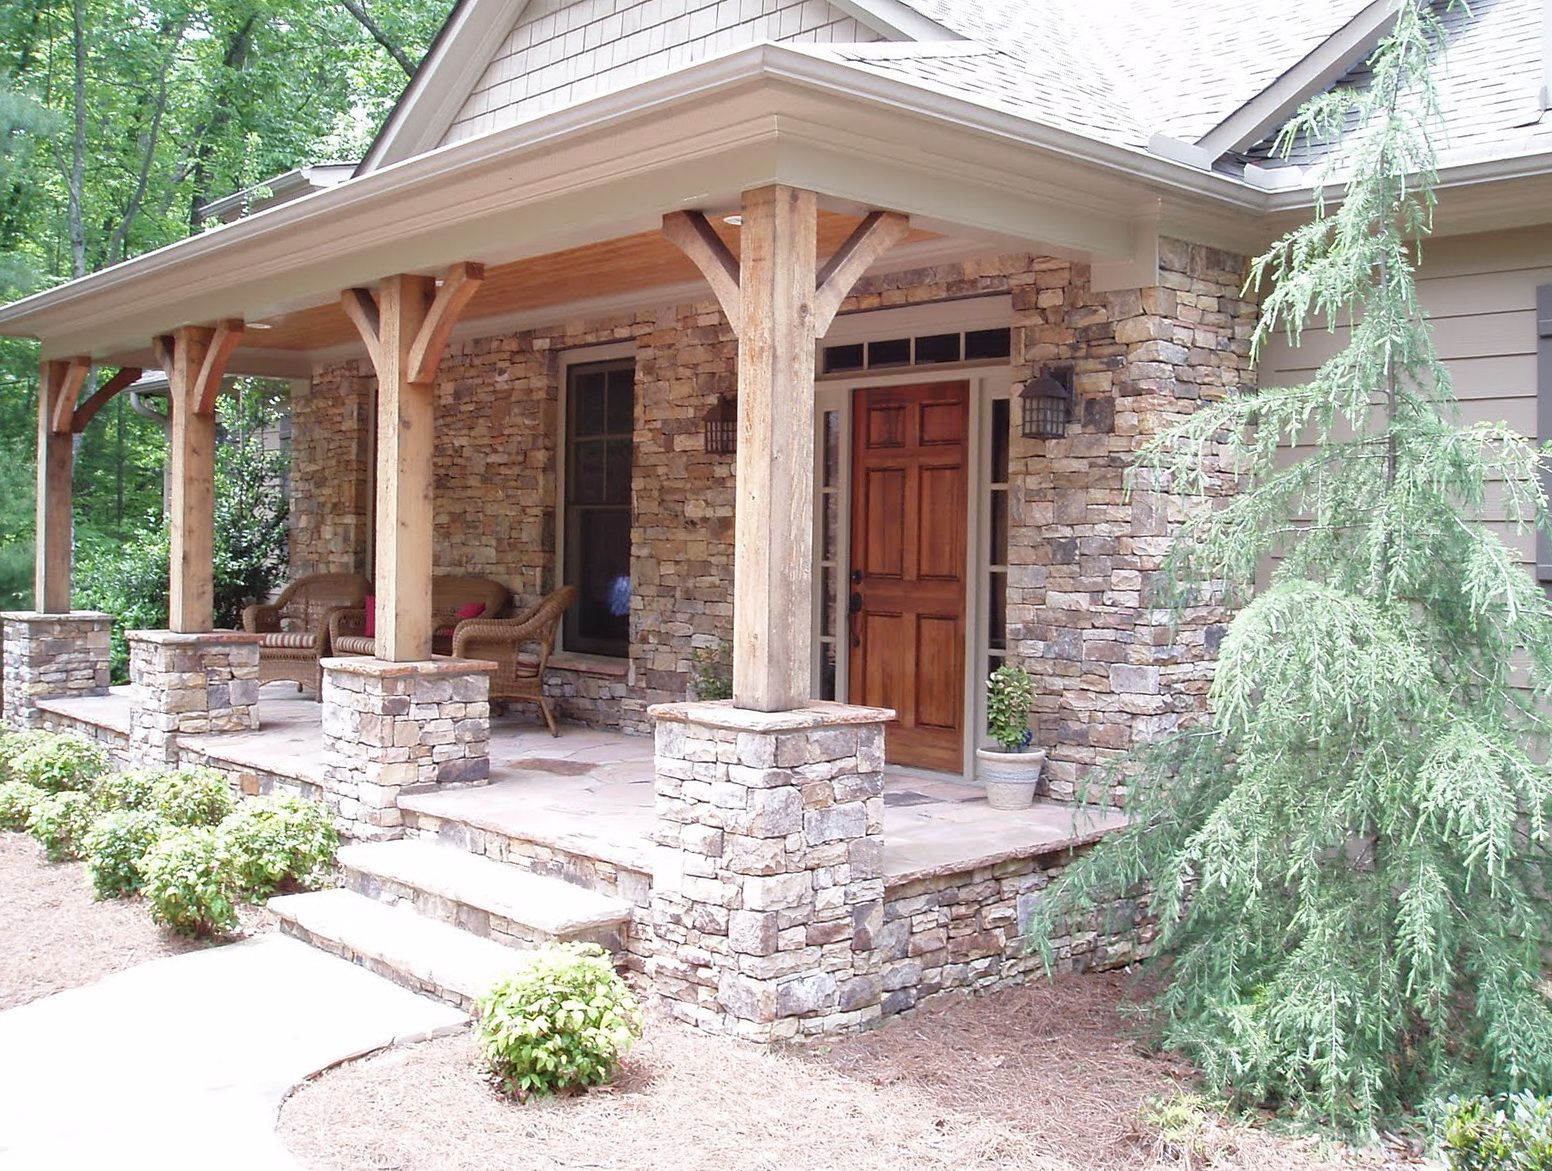 Stacked Stone Porch Columns   This would work beautifully with my house Stacked Stone Porch Columns   This would work beautifully with my  . Front Porch Columns Images. Home Design Ideas